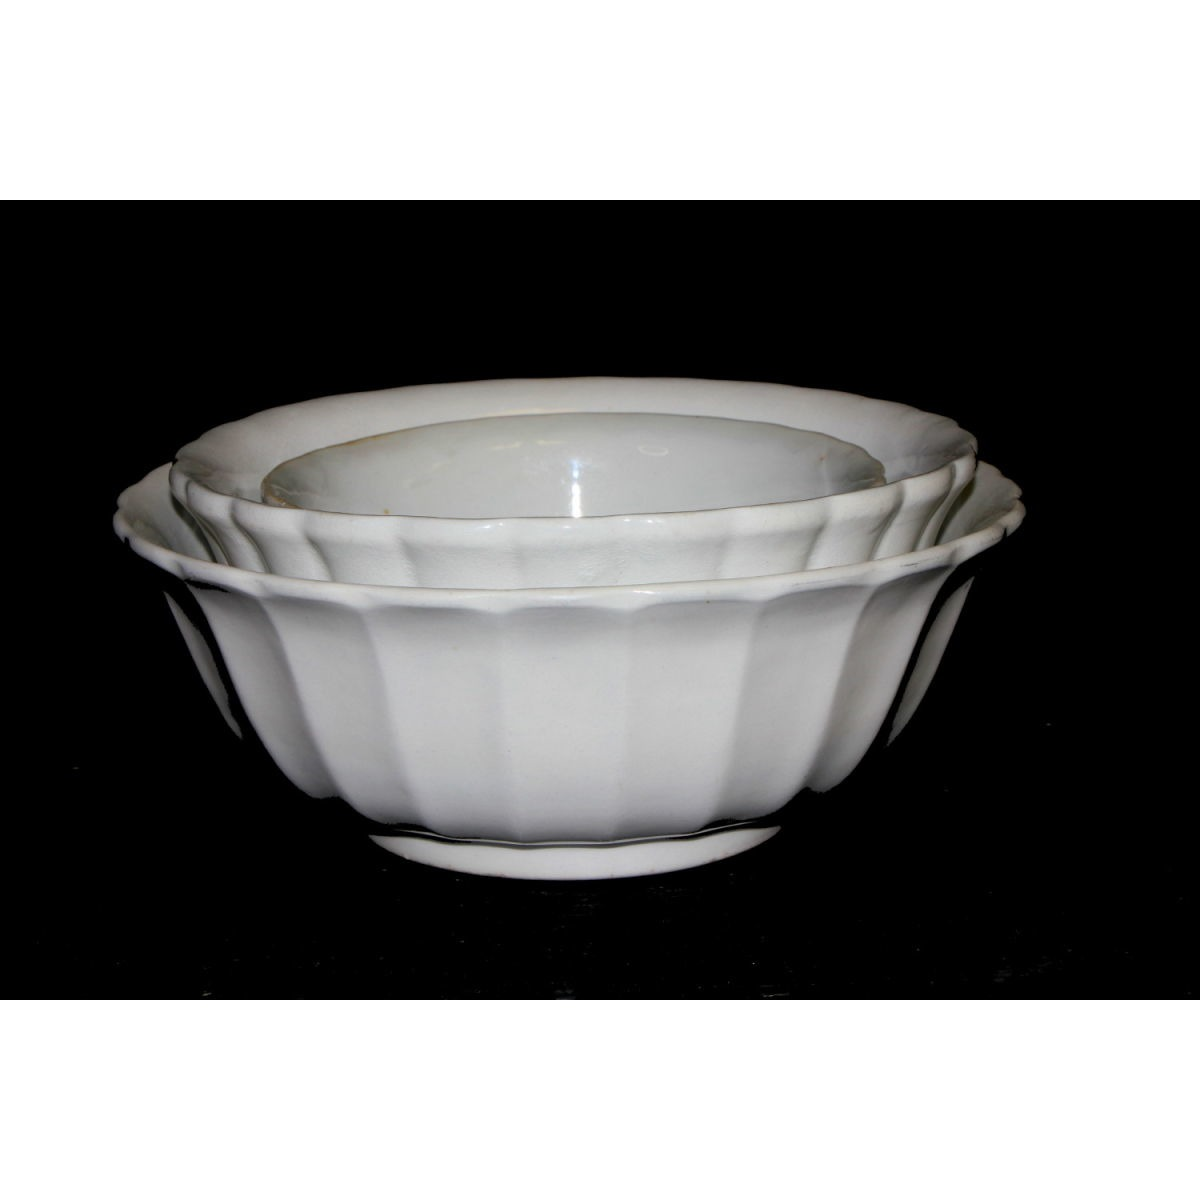 "Large Fluted Ironstone Serving Bowl - 11"" diameter"